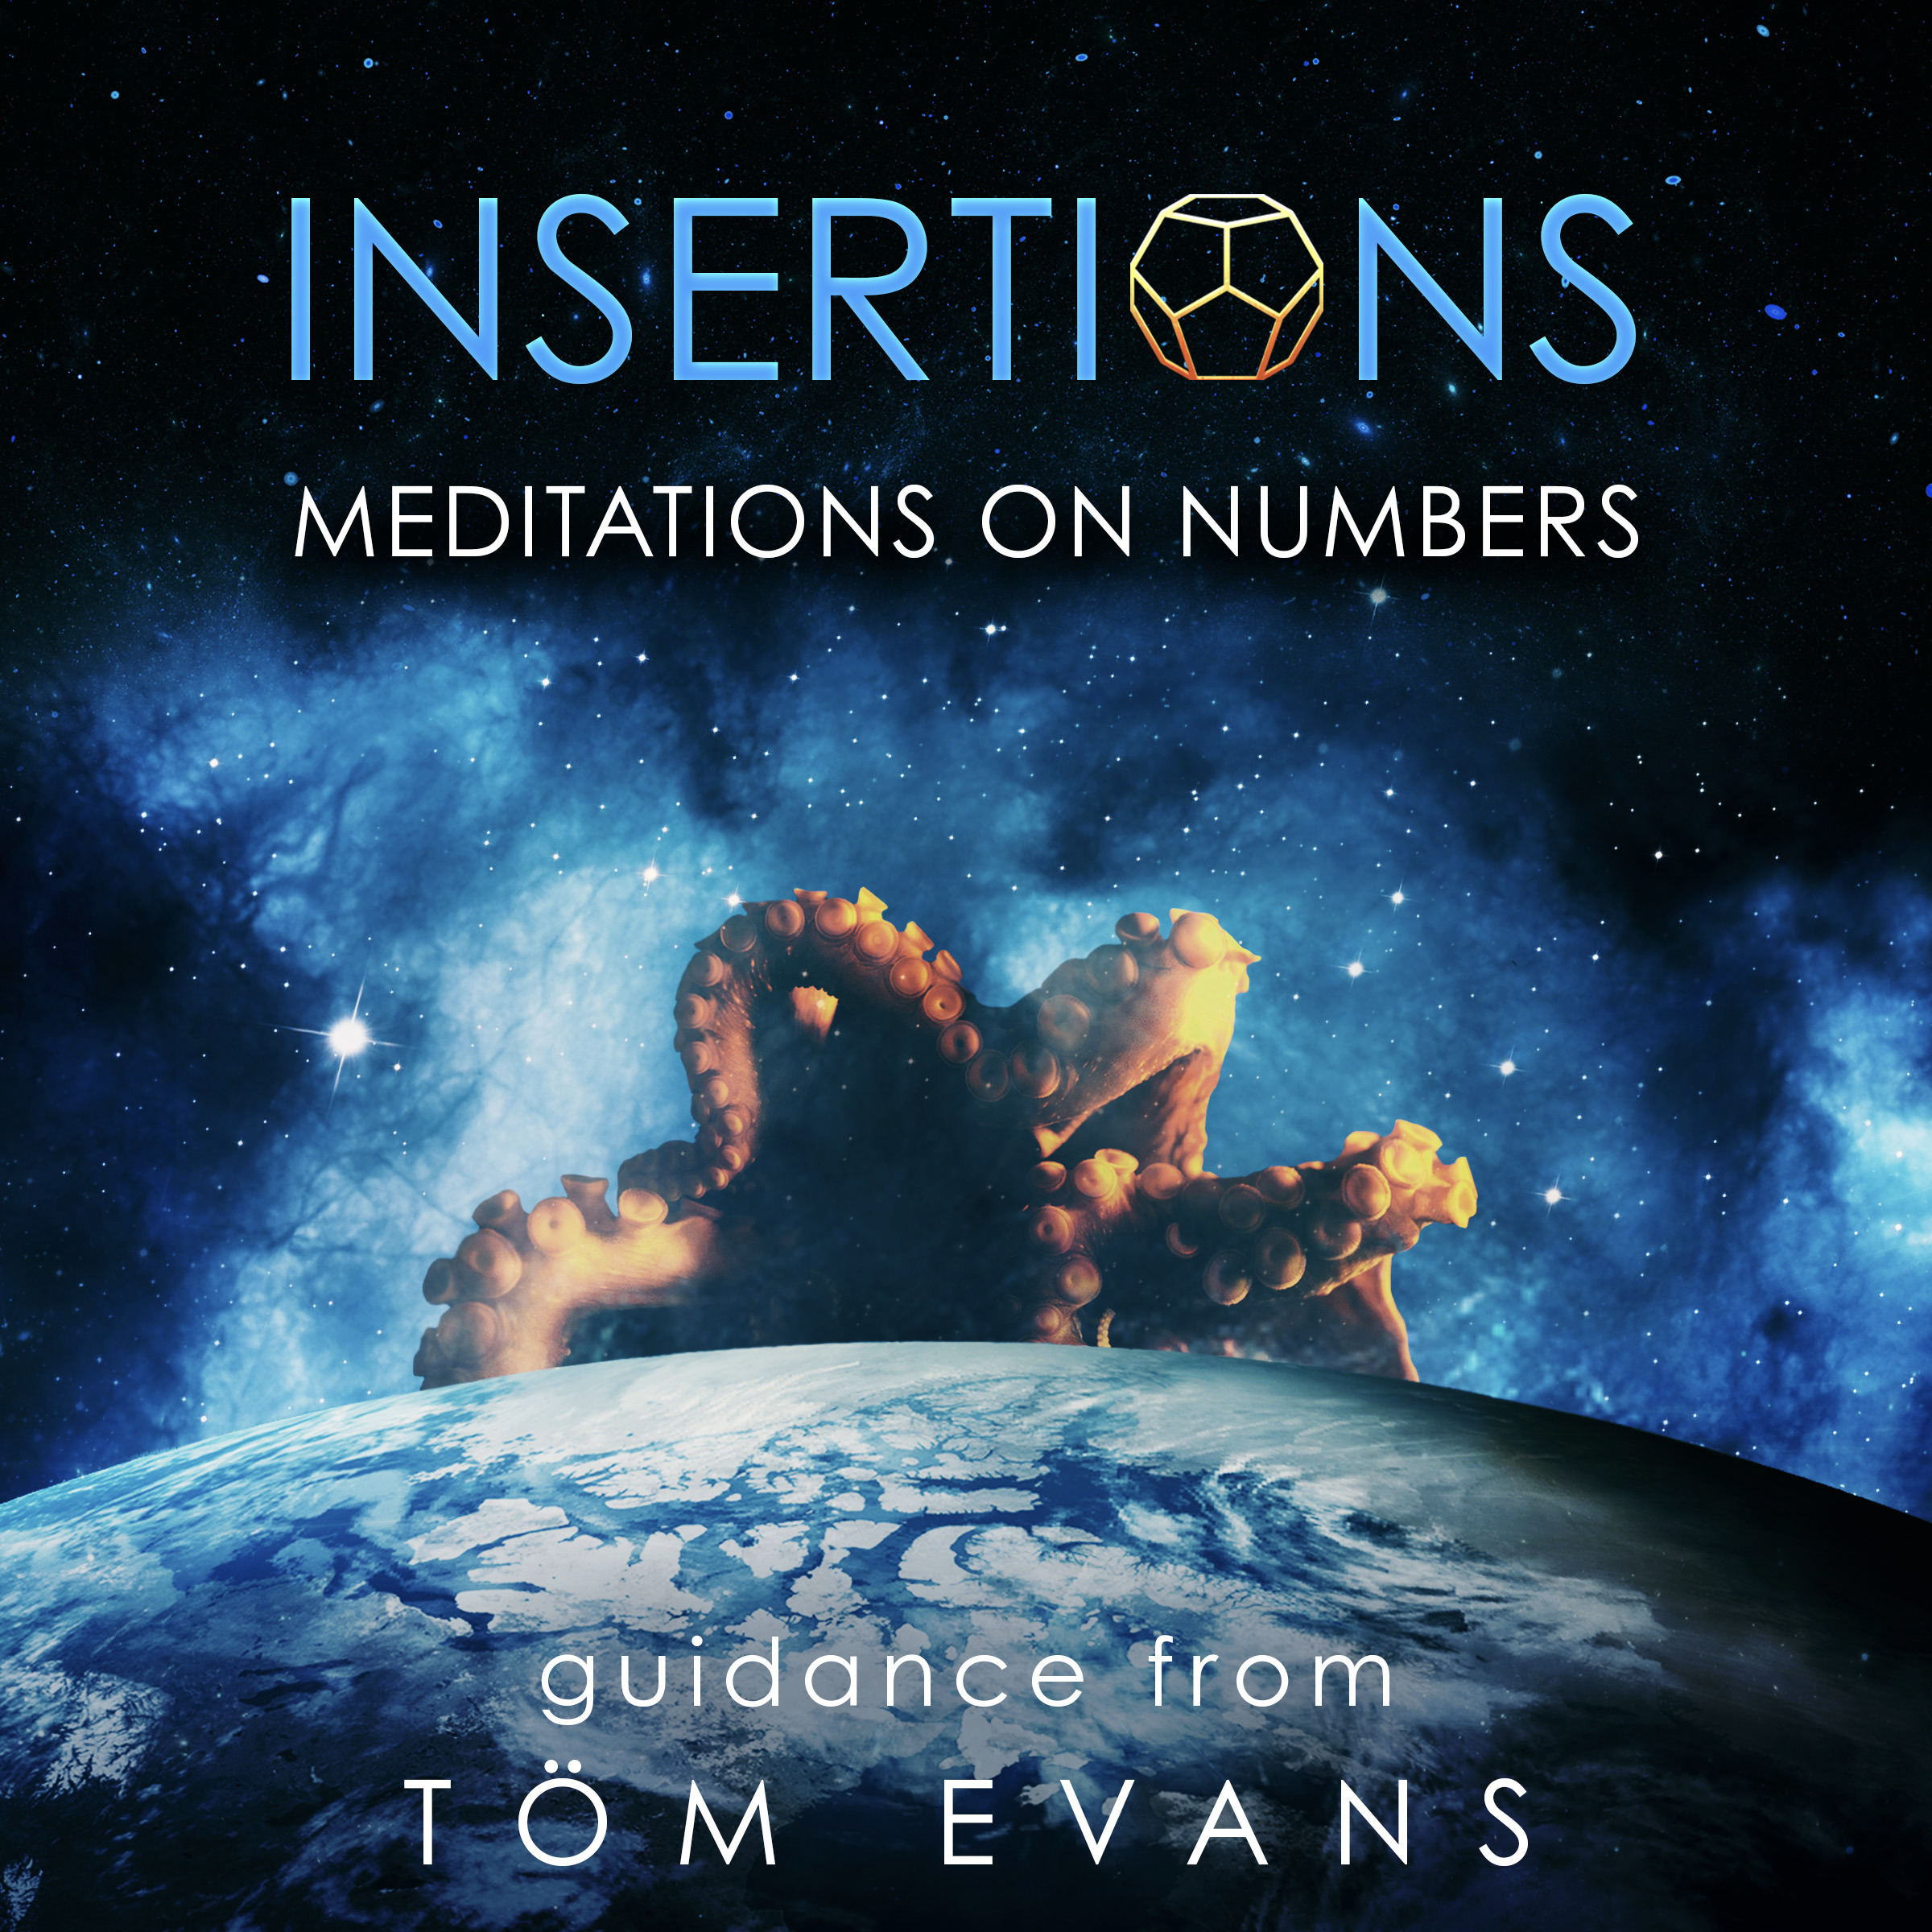 Insertions : Meditations on Numbers